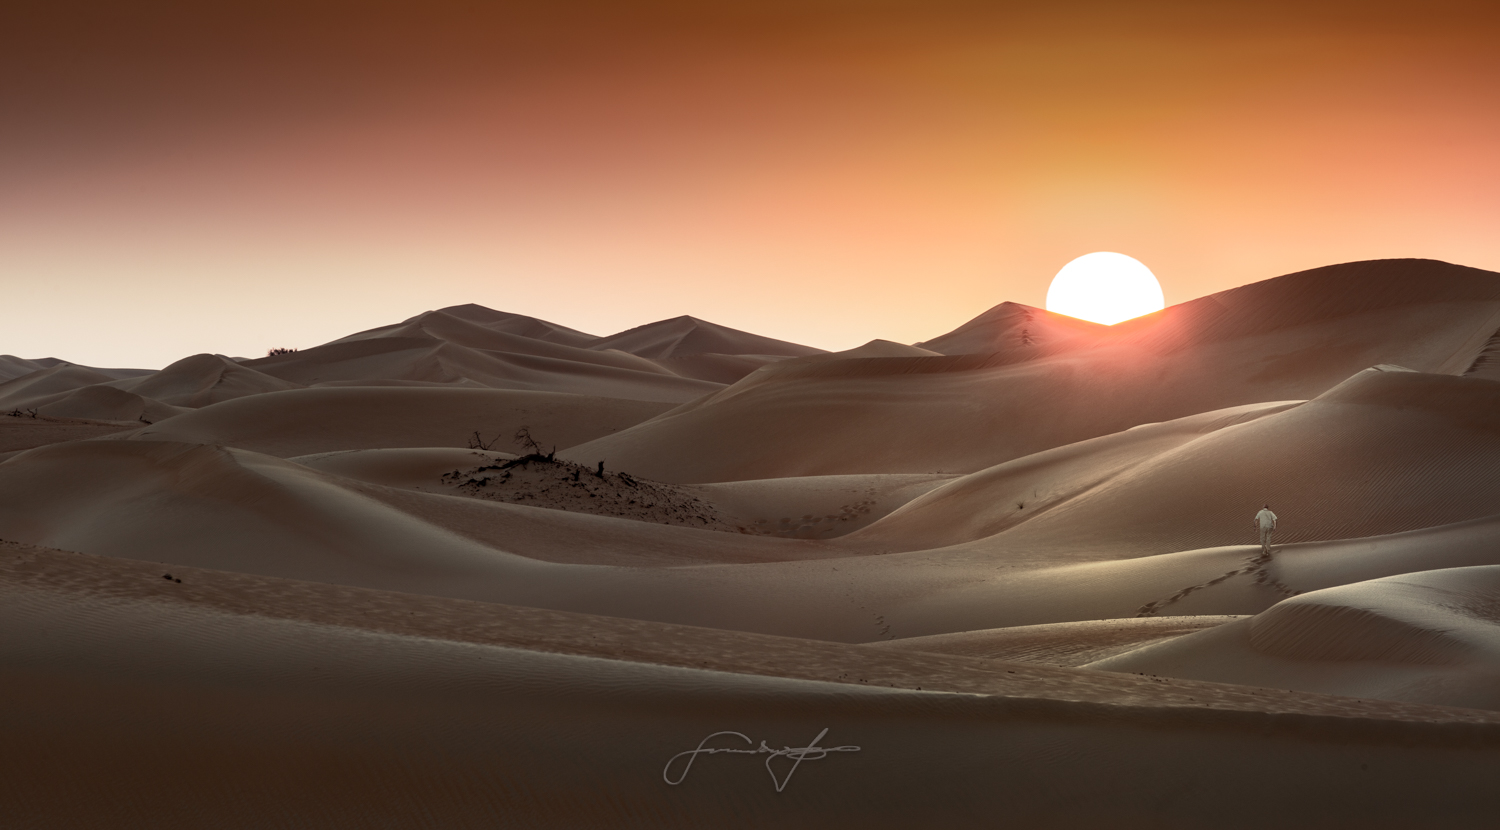 Sunset at Razeen desert